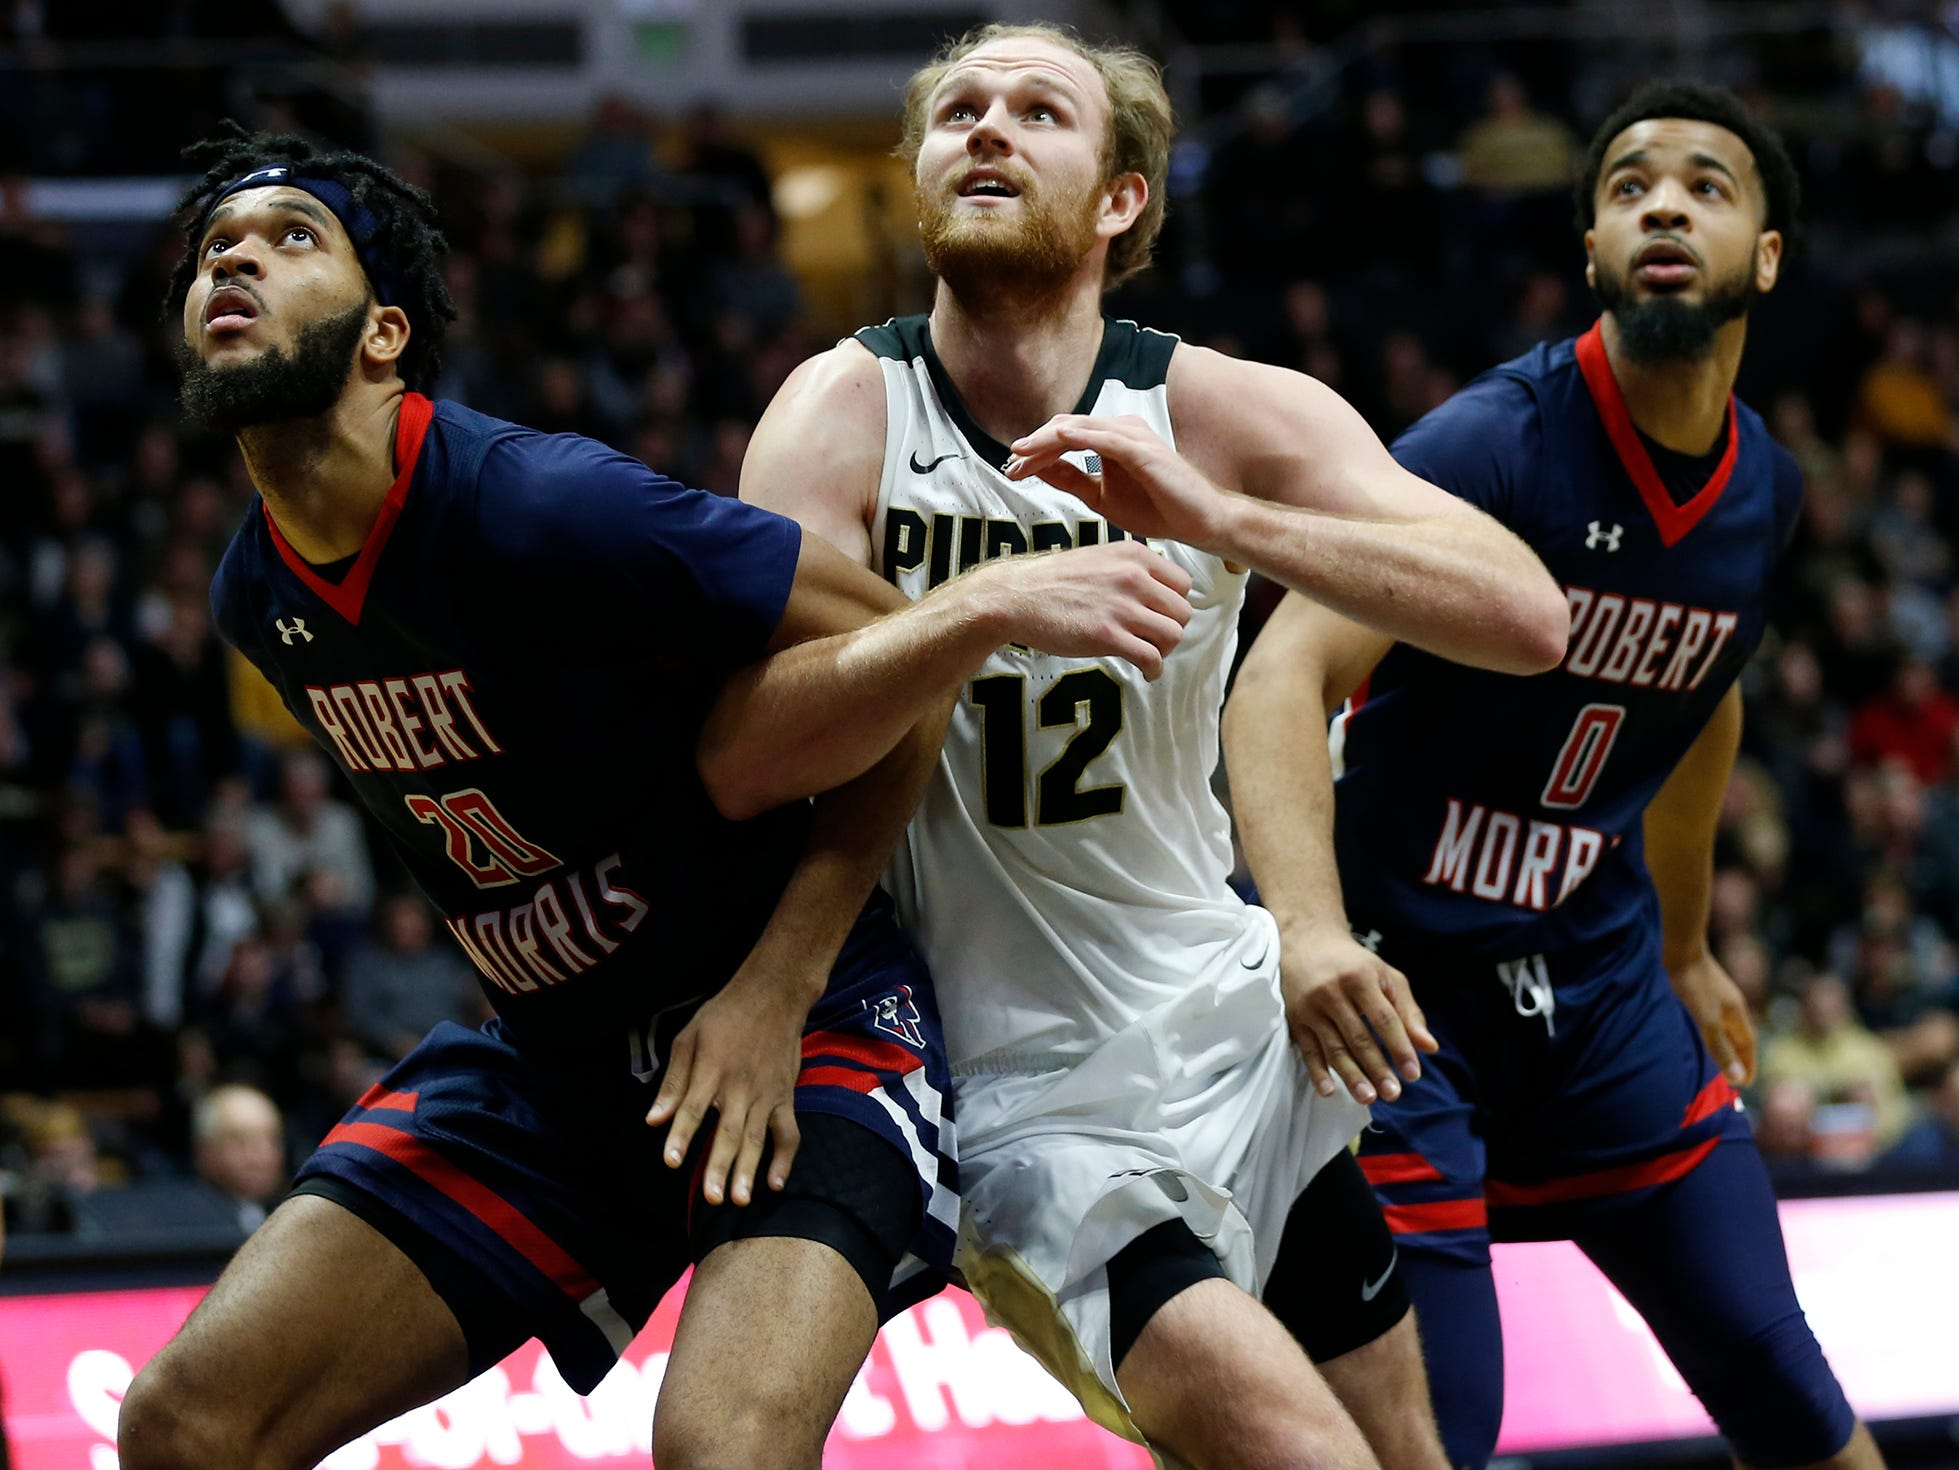 Evan Boudreaux of Purdue battles Charles Bain of Robert Morris for position Friday, November 23, 2018, at Mackey Arena. Purdue defeated Robert Morris 84-46.